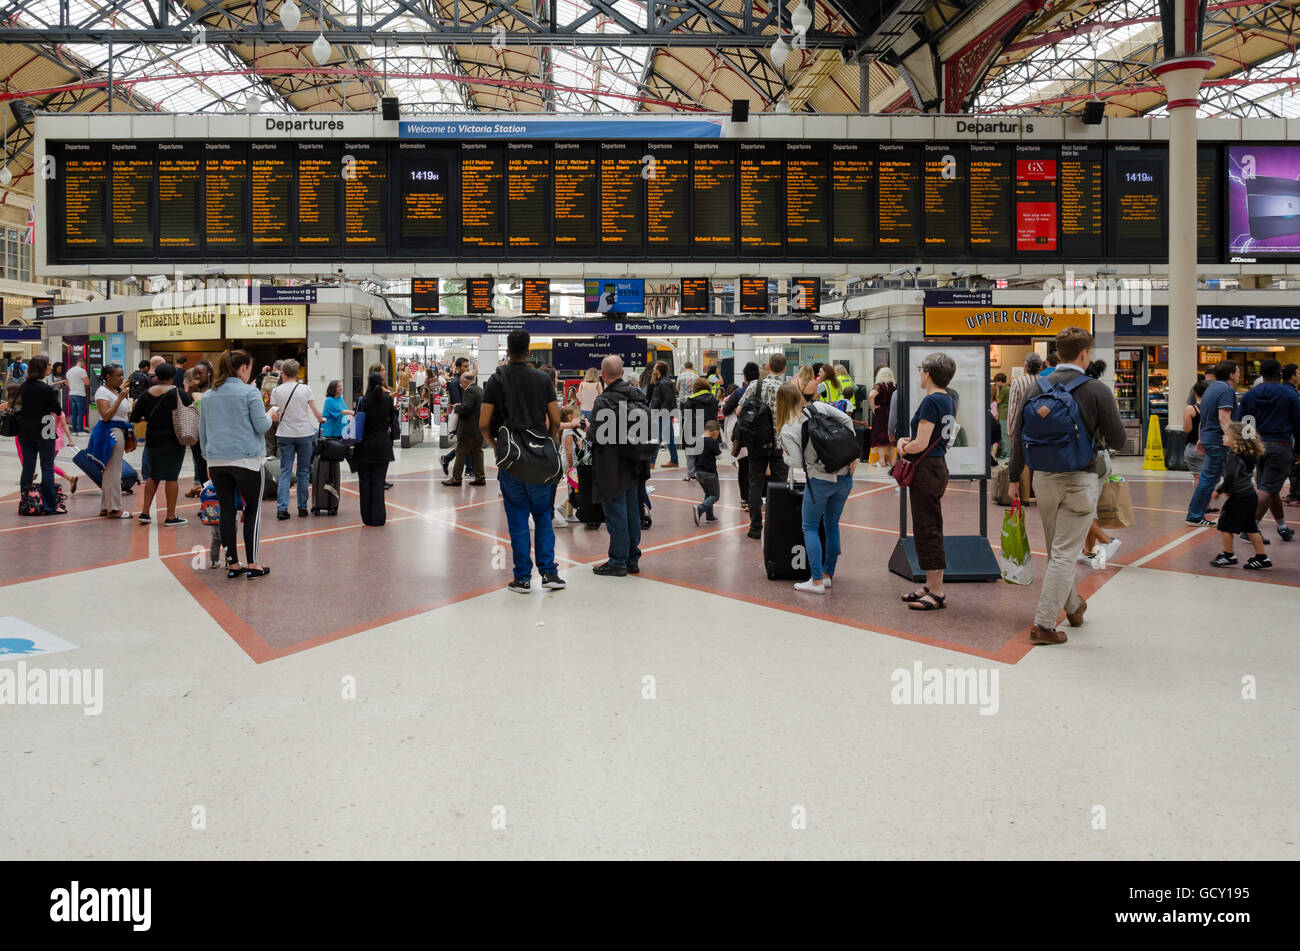 Departure boards in the main concourse of Victoria Railway Station in London. - Stock Image